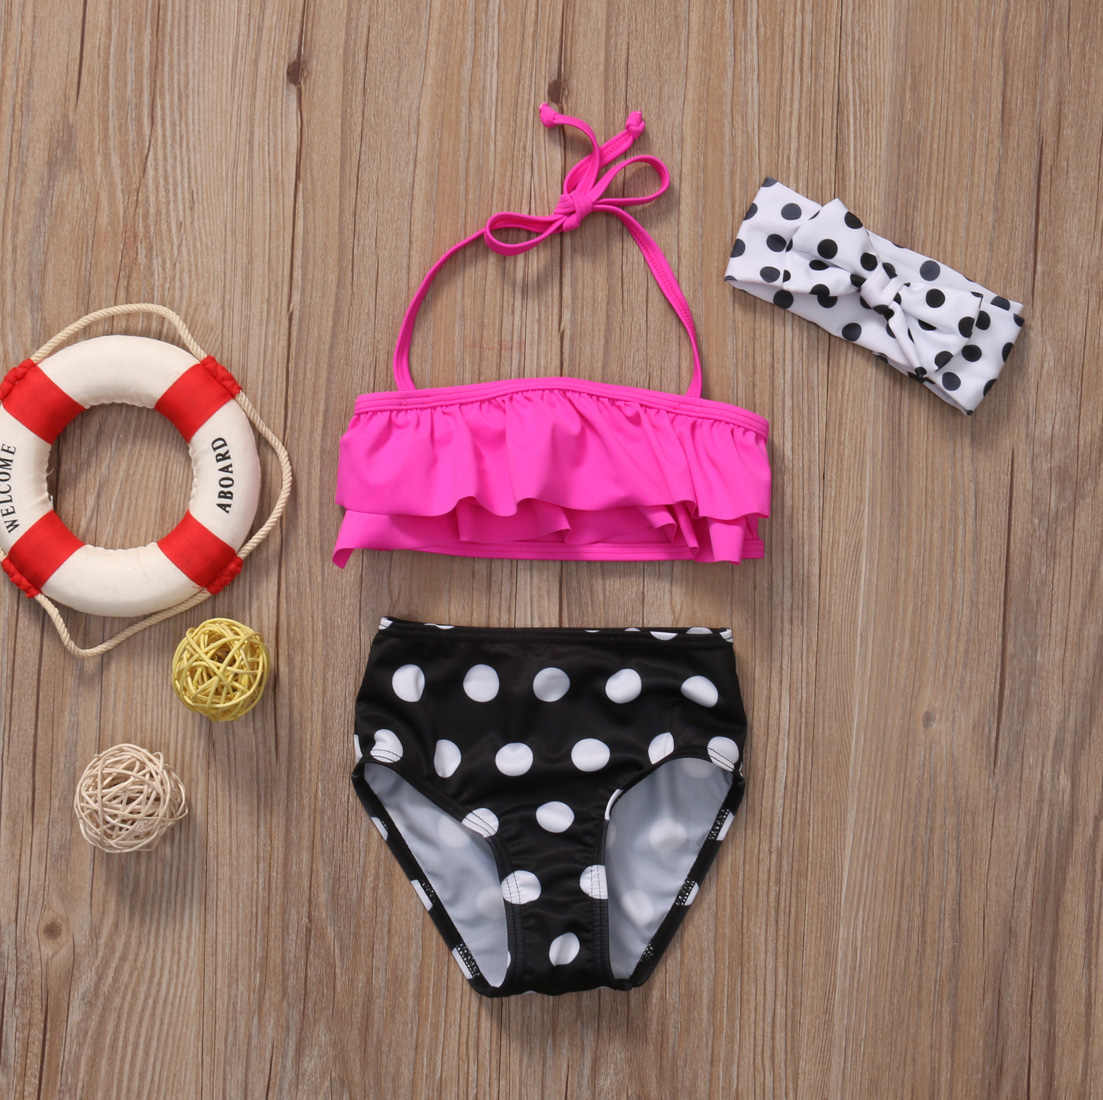 Little Girls Two-piece Polka Dots Swimsuit Kids Baby Girl Bikini Suit Swimwear Bathing Swimming Swimmer Costume Clothes